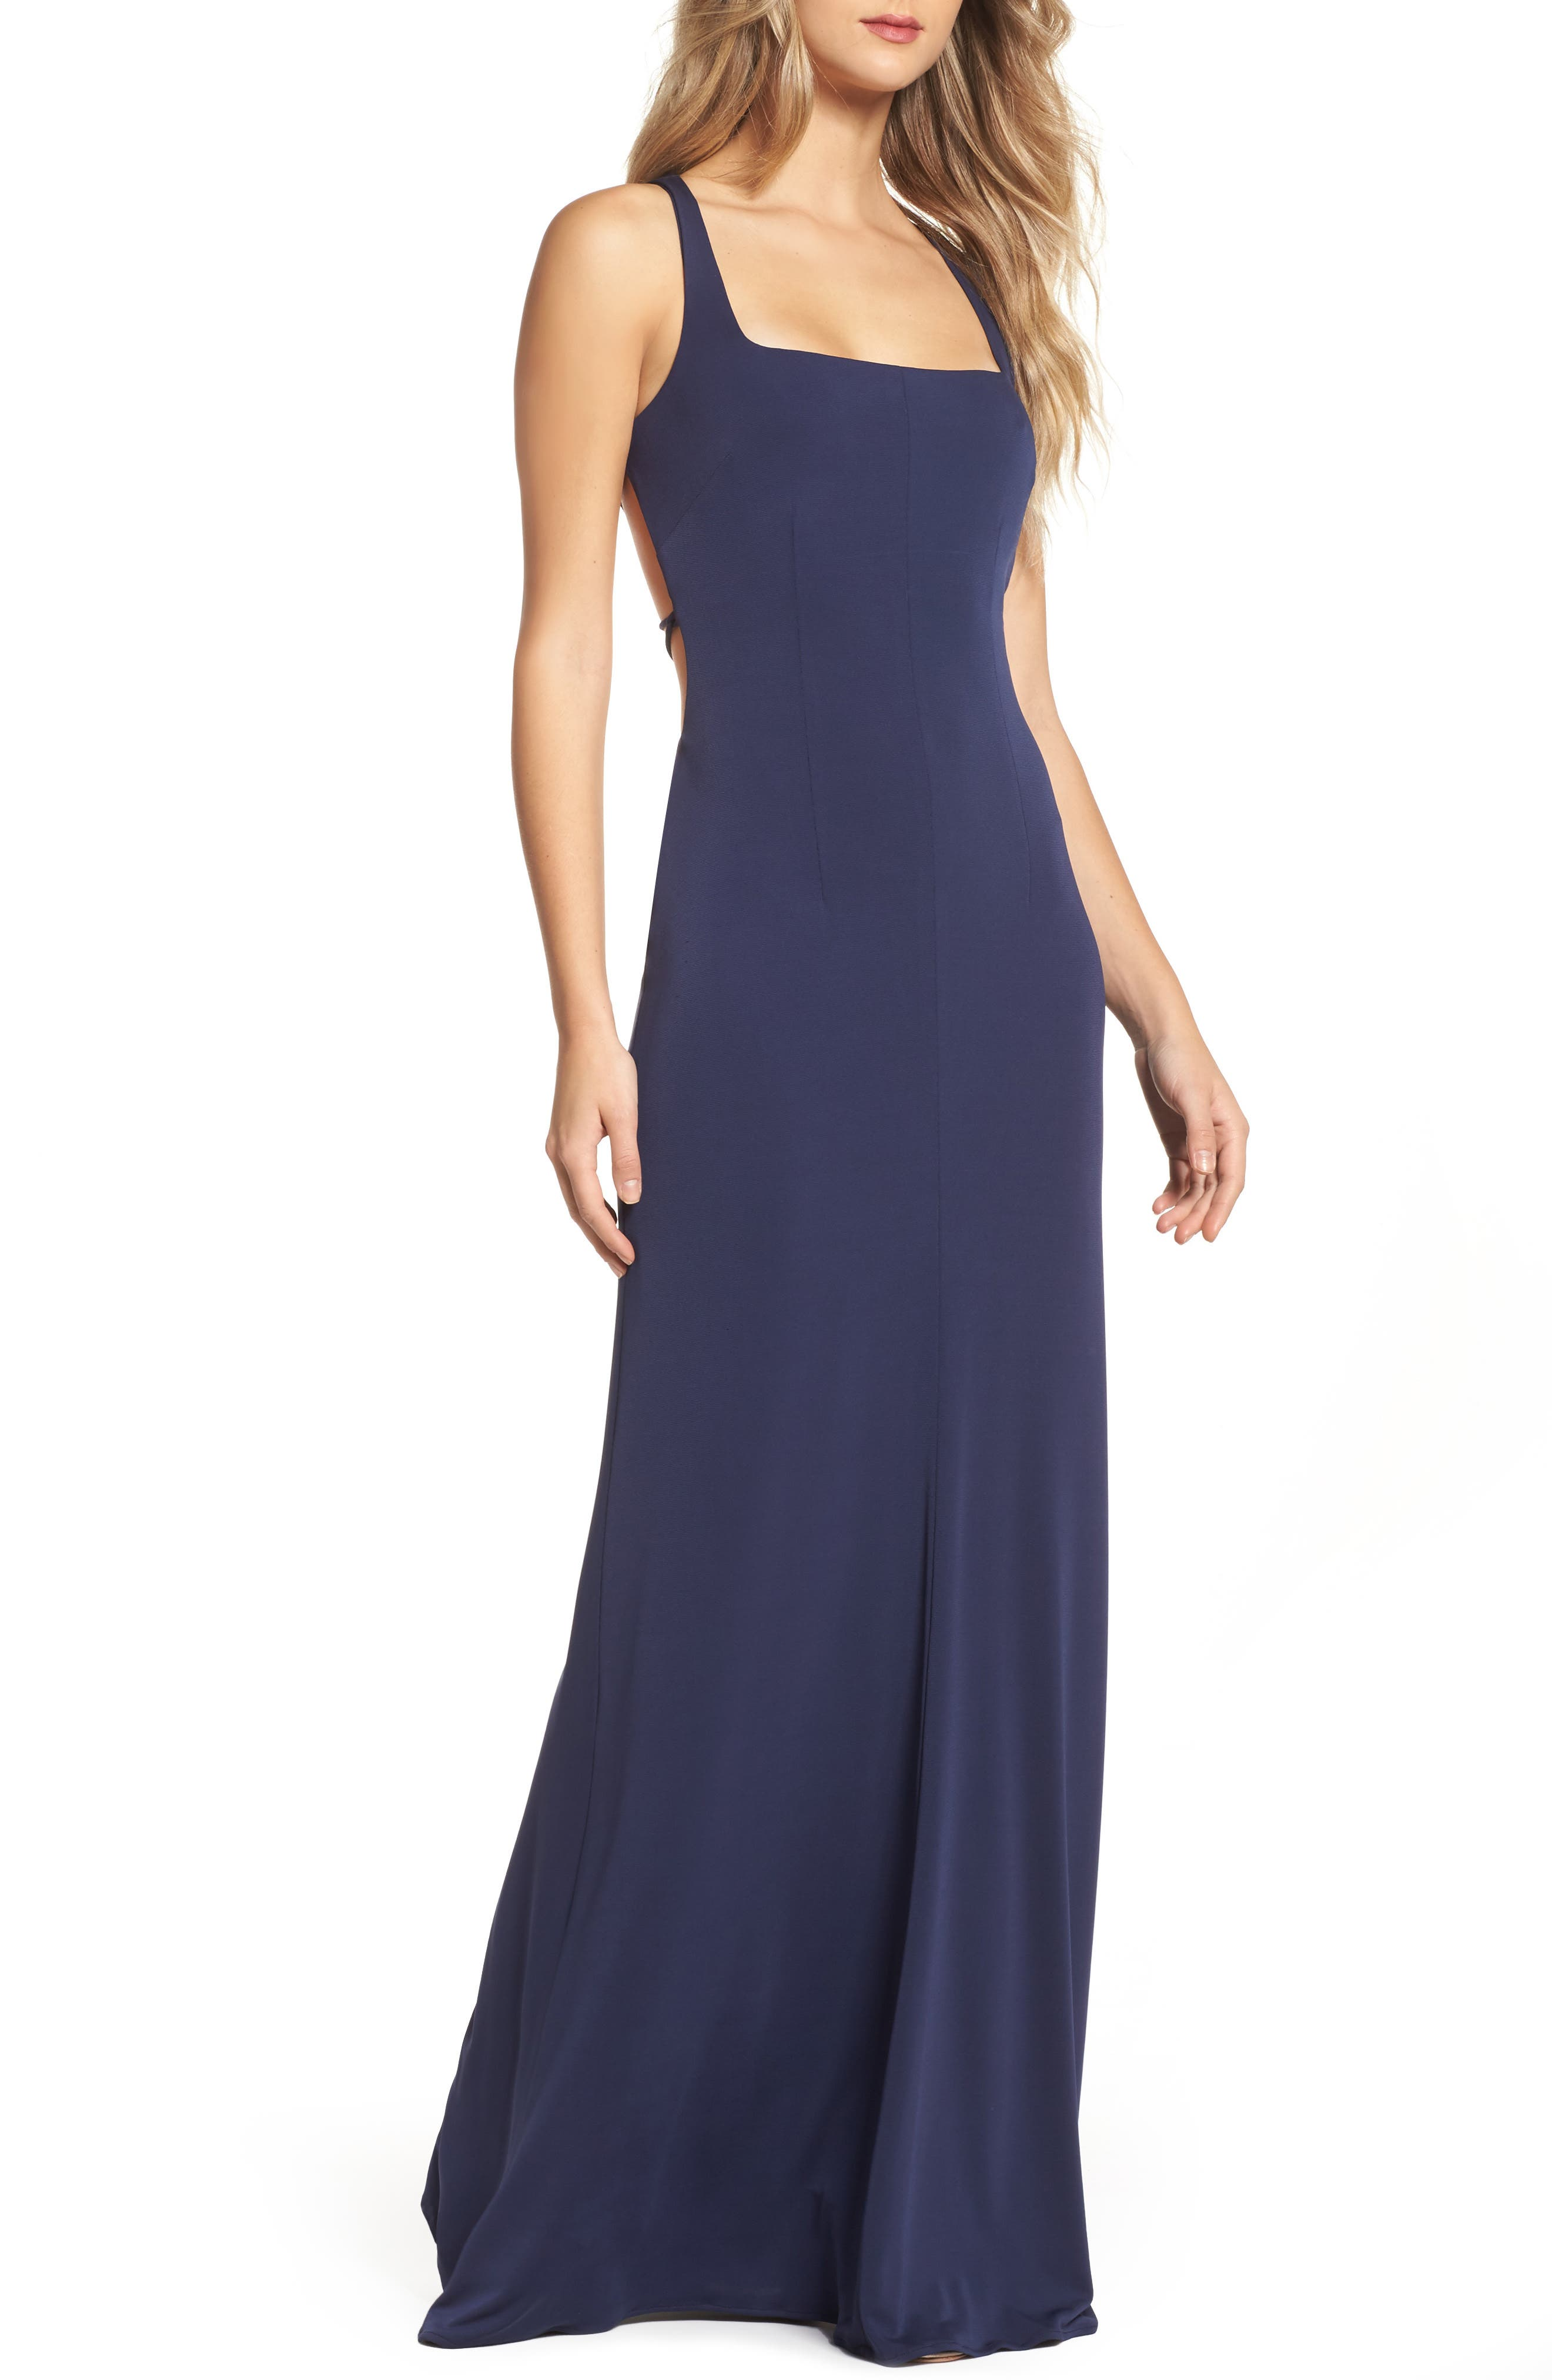 Maria Bianca Nero Amber Tie Back Gown